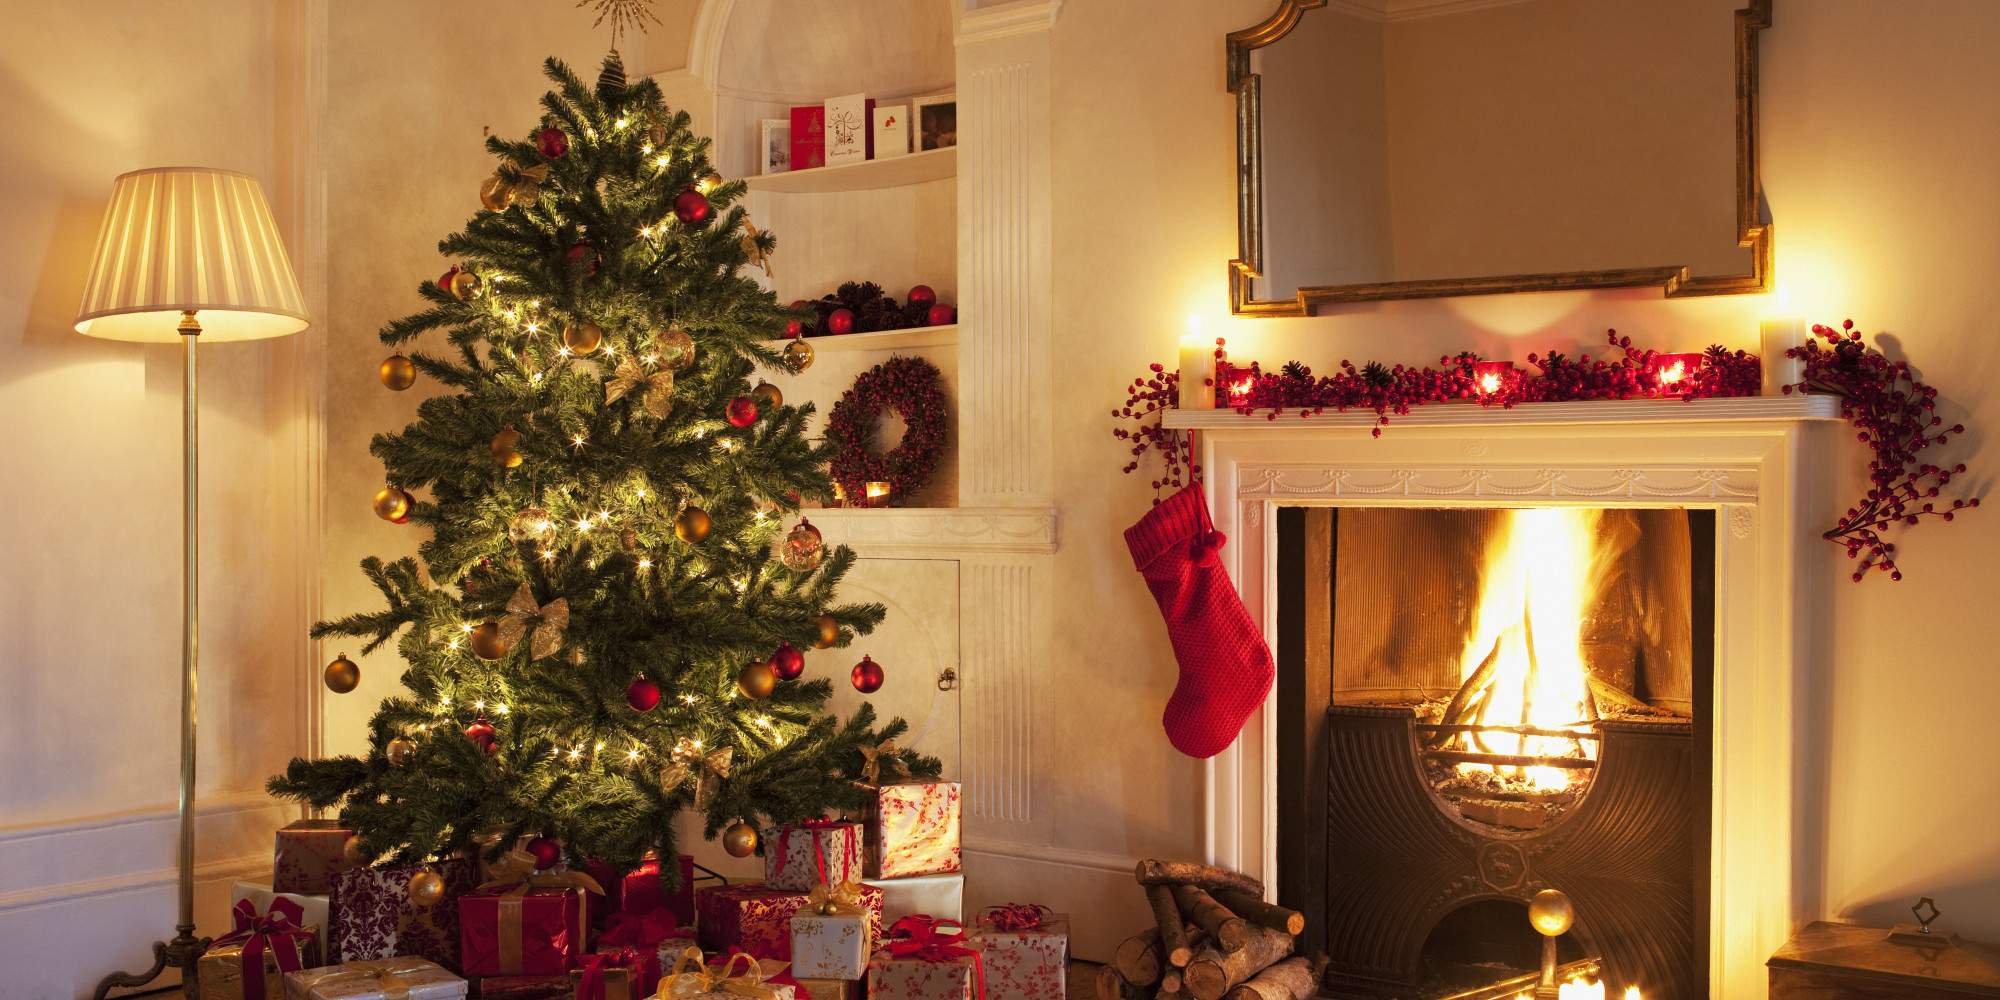 How to decorate your student house for christmas on a budget for Christmas decorations for inside your house